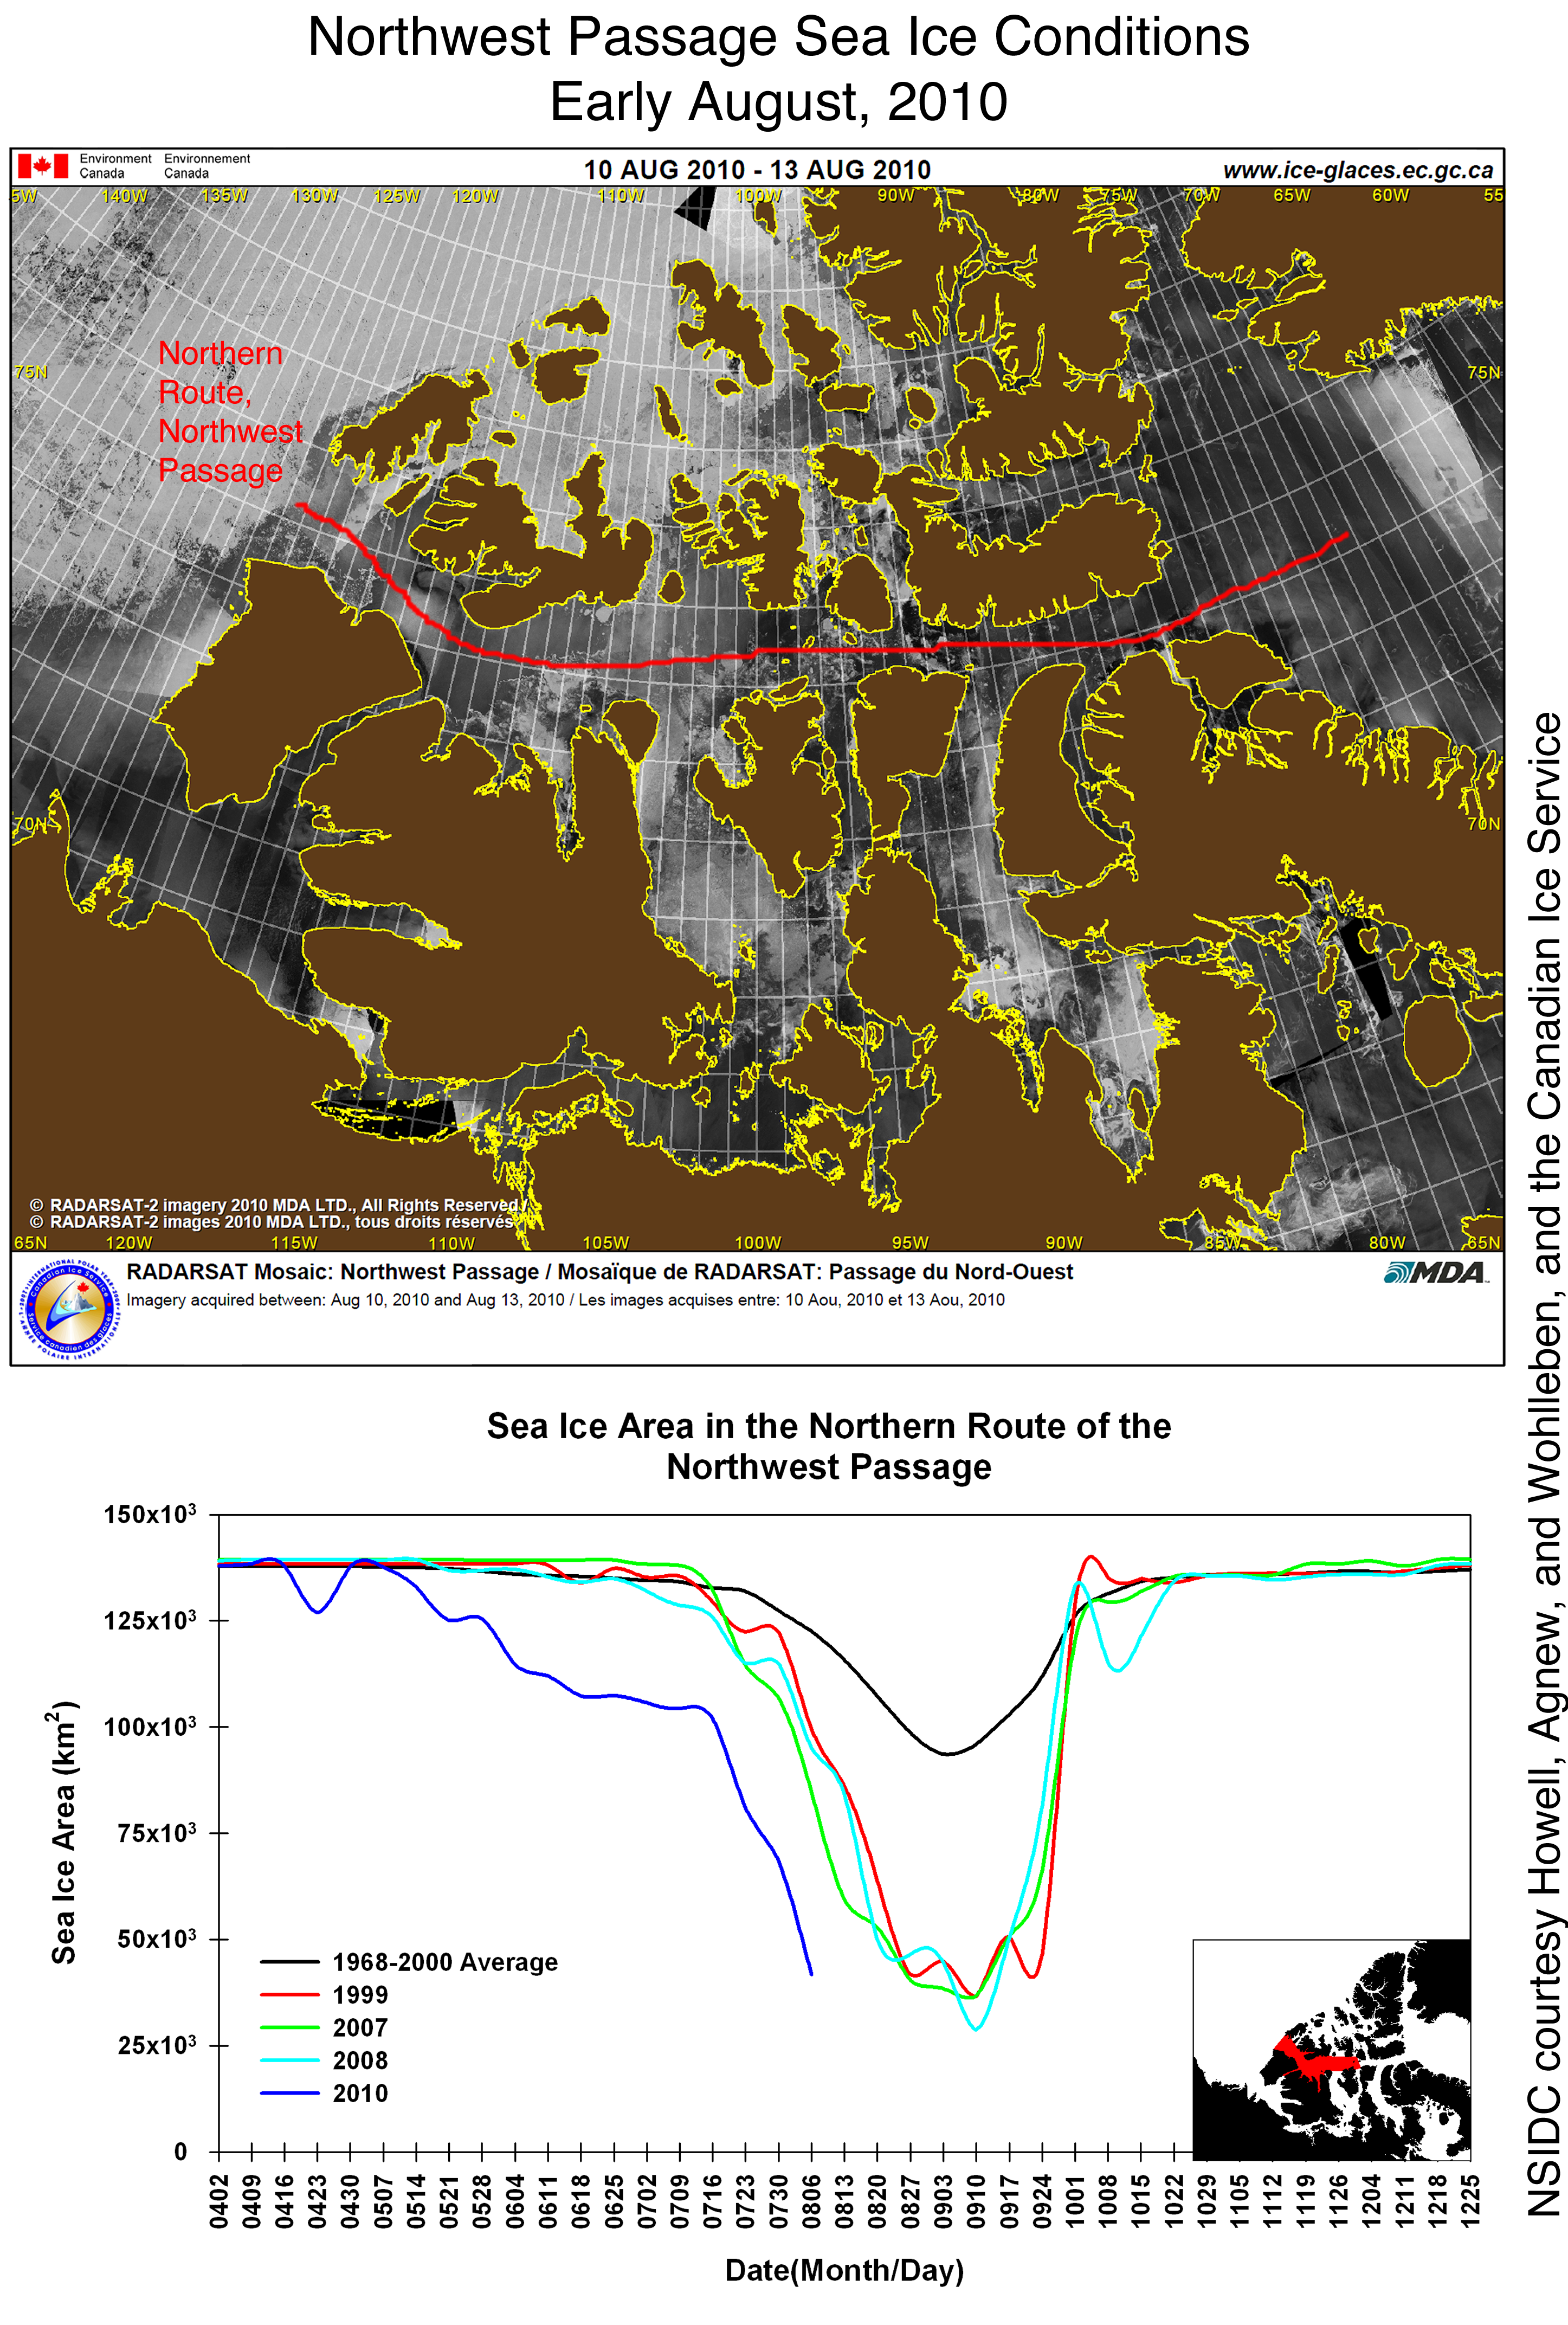 Northwest Passage sea ice conditions